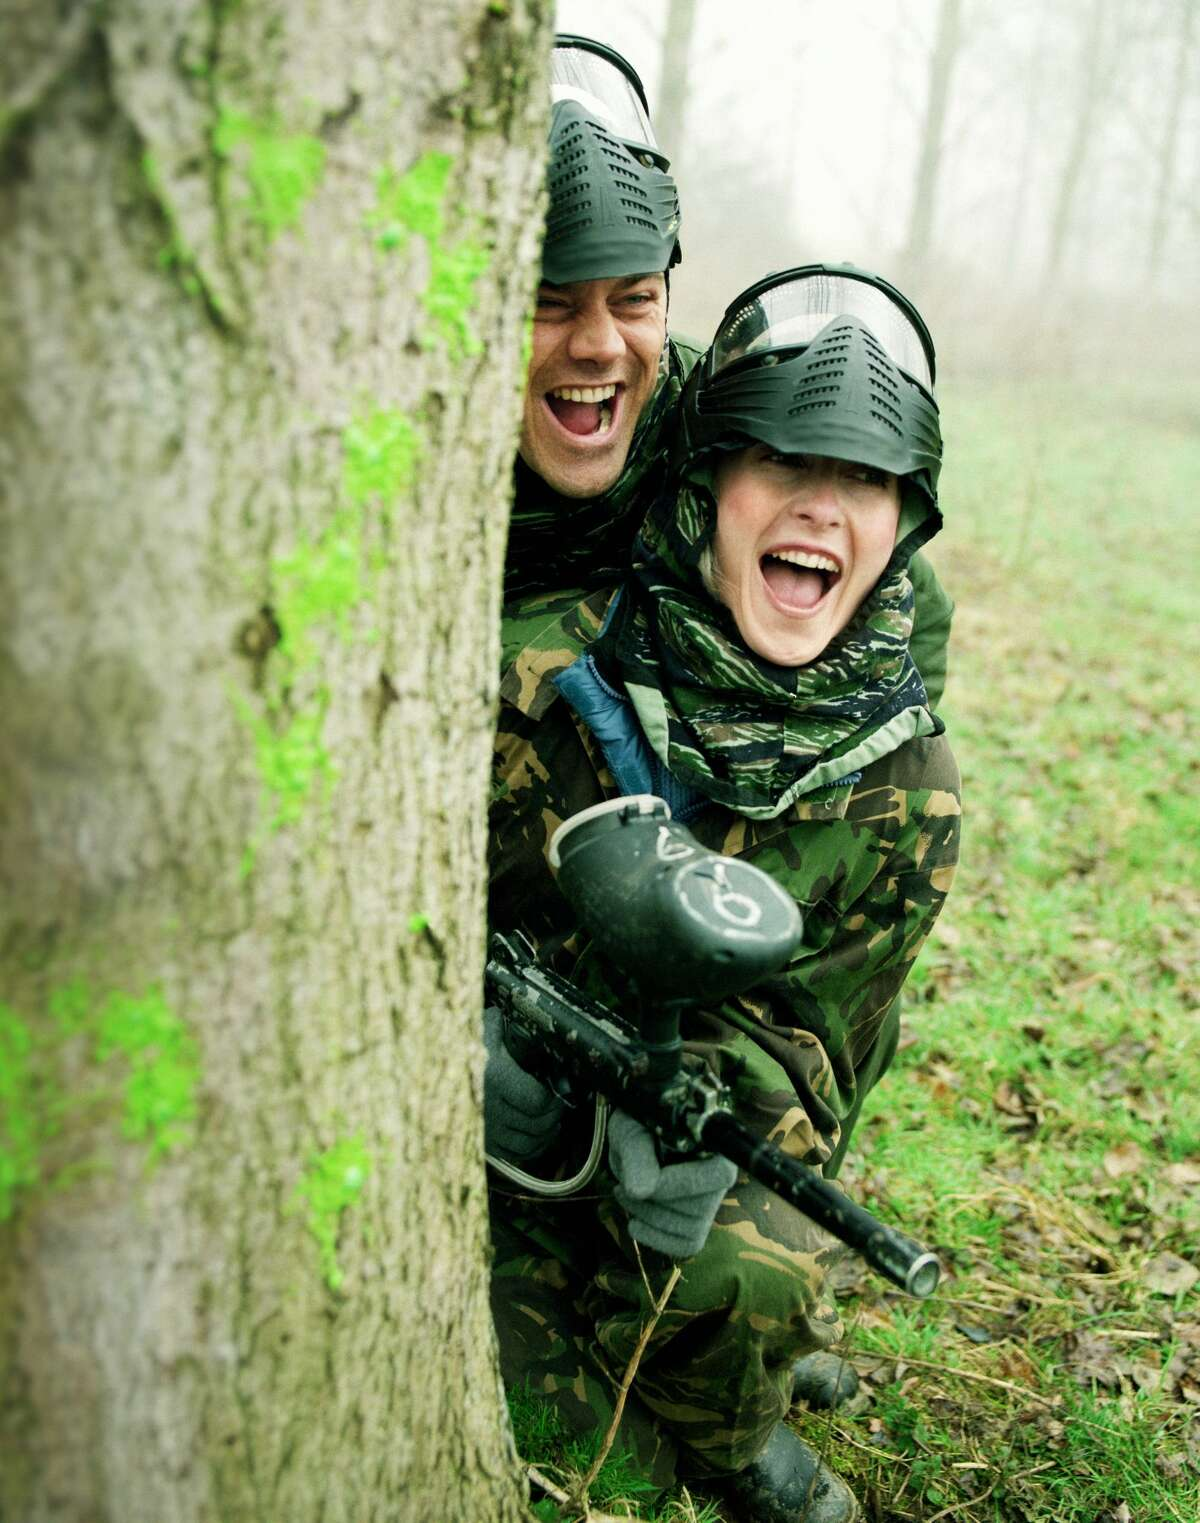 Paintball: If you want an exhilarating experience and like being shot at (without any immediate danger) paintball is a fun option.